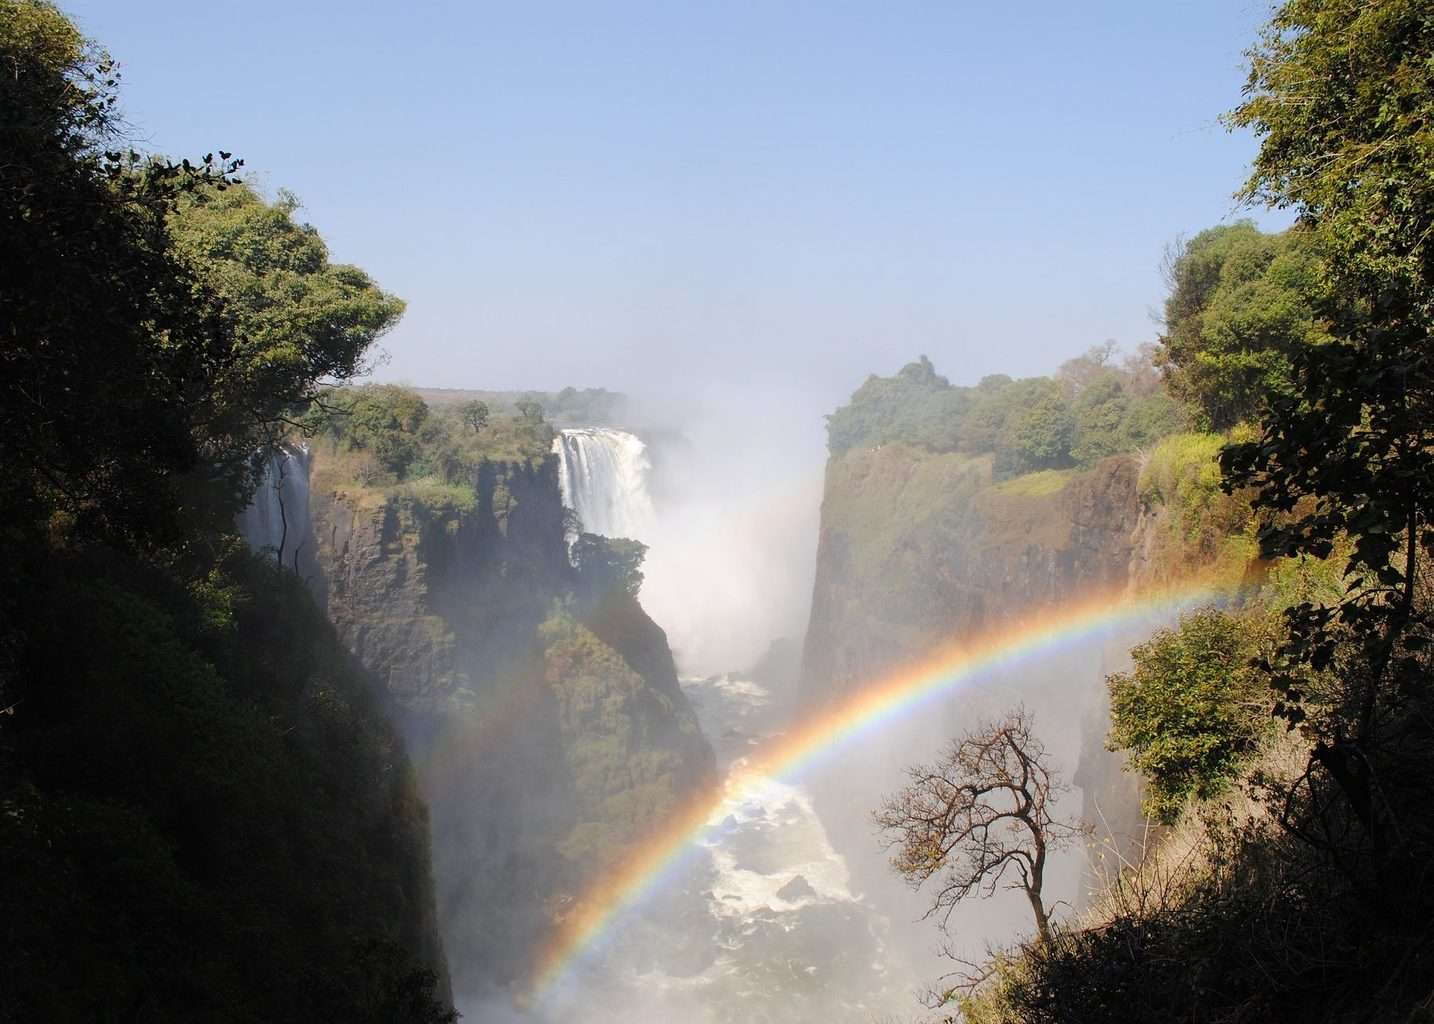 View of Victoria Falls Zambezi with rainbow in spray, part of the Kruger and Victoria Falls tour